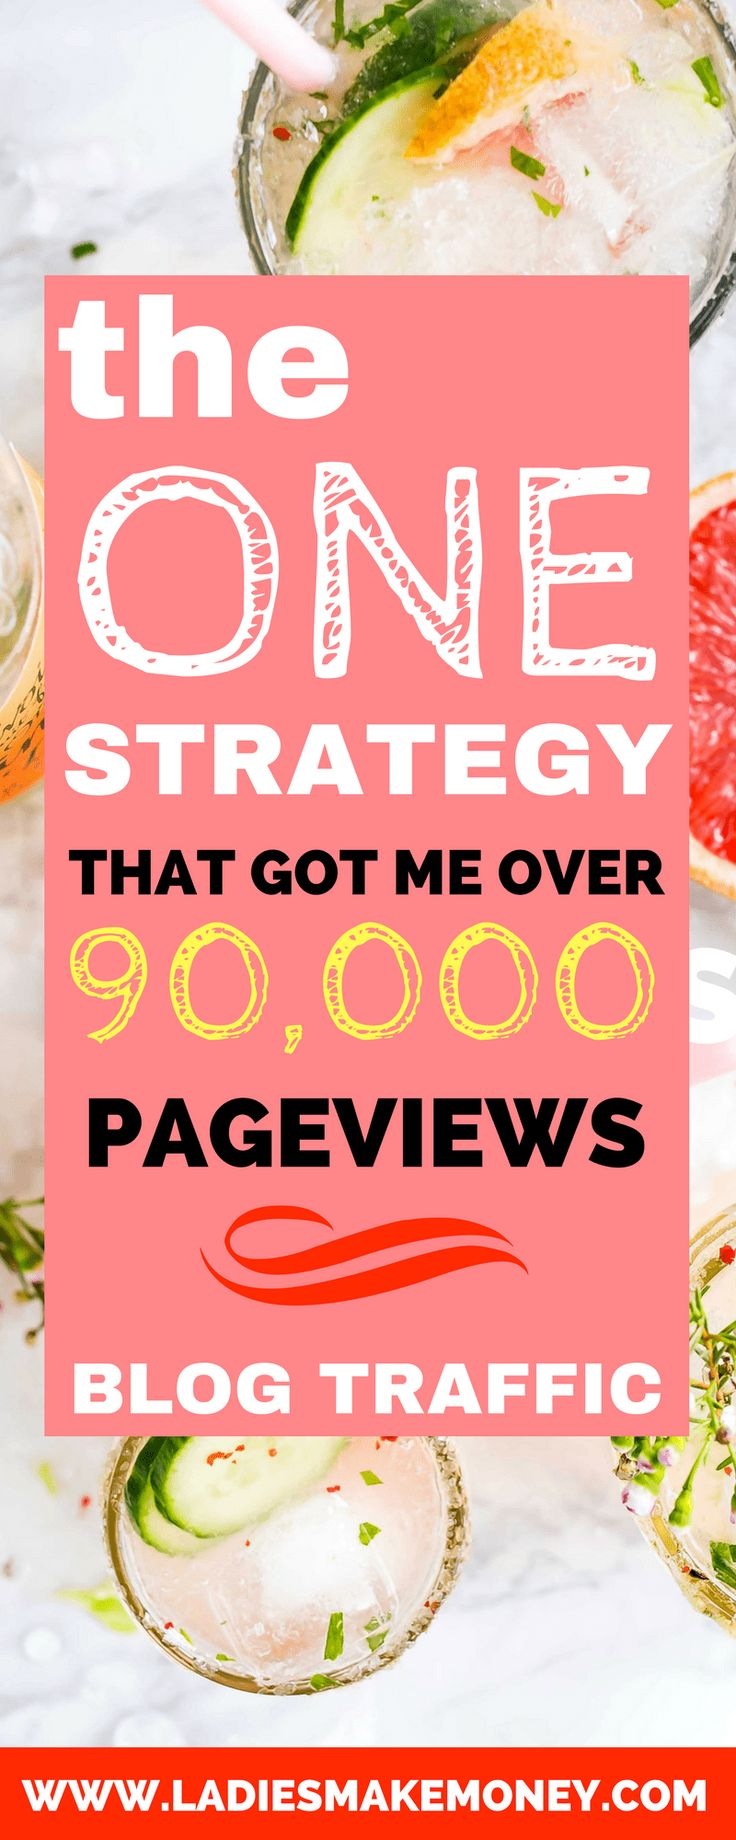 How to increase blog traffic | How to increase blog page views | Pinteresting Strategies Review | Growing your blog| Pinterest Traffic | Pinterest blogging tips| If your a new blogger or biz owner looking to use Pinterest to grow your blog traffic and build your list this is the guide on how to use Pinterest along with some expert tips and tricks to help you get the most from Pinterest. #Pinteresttips #increasingblogtraffic #bloggingtips